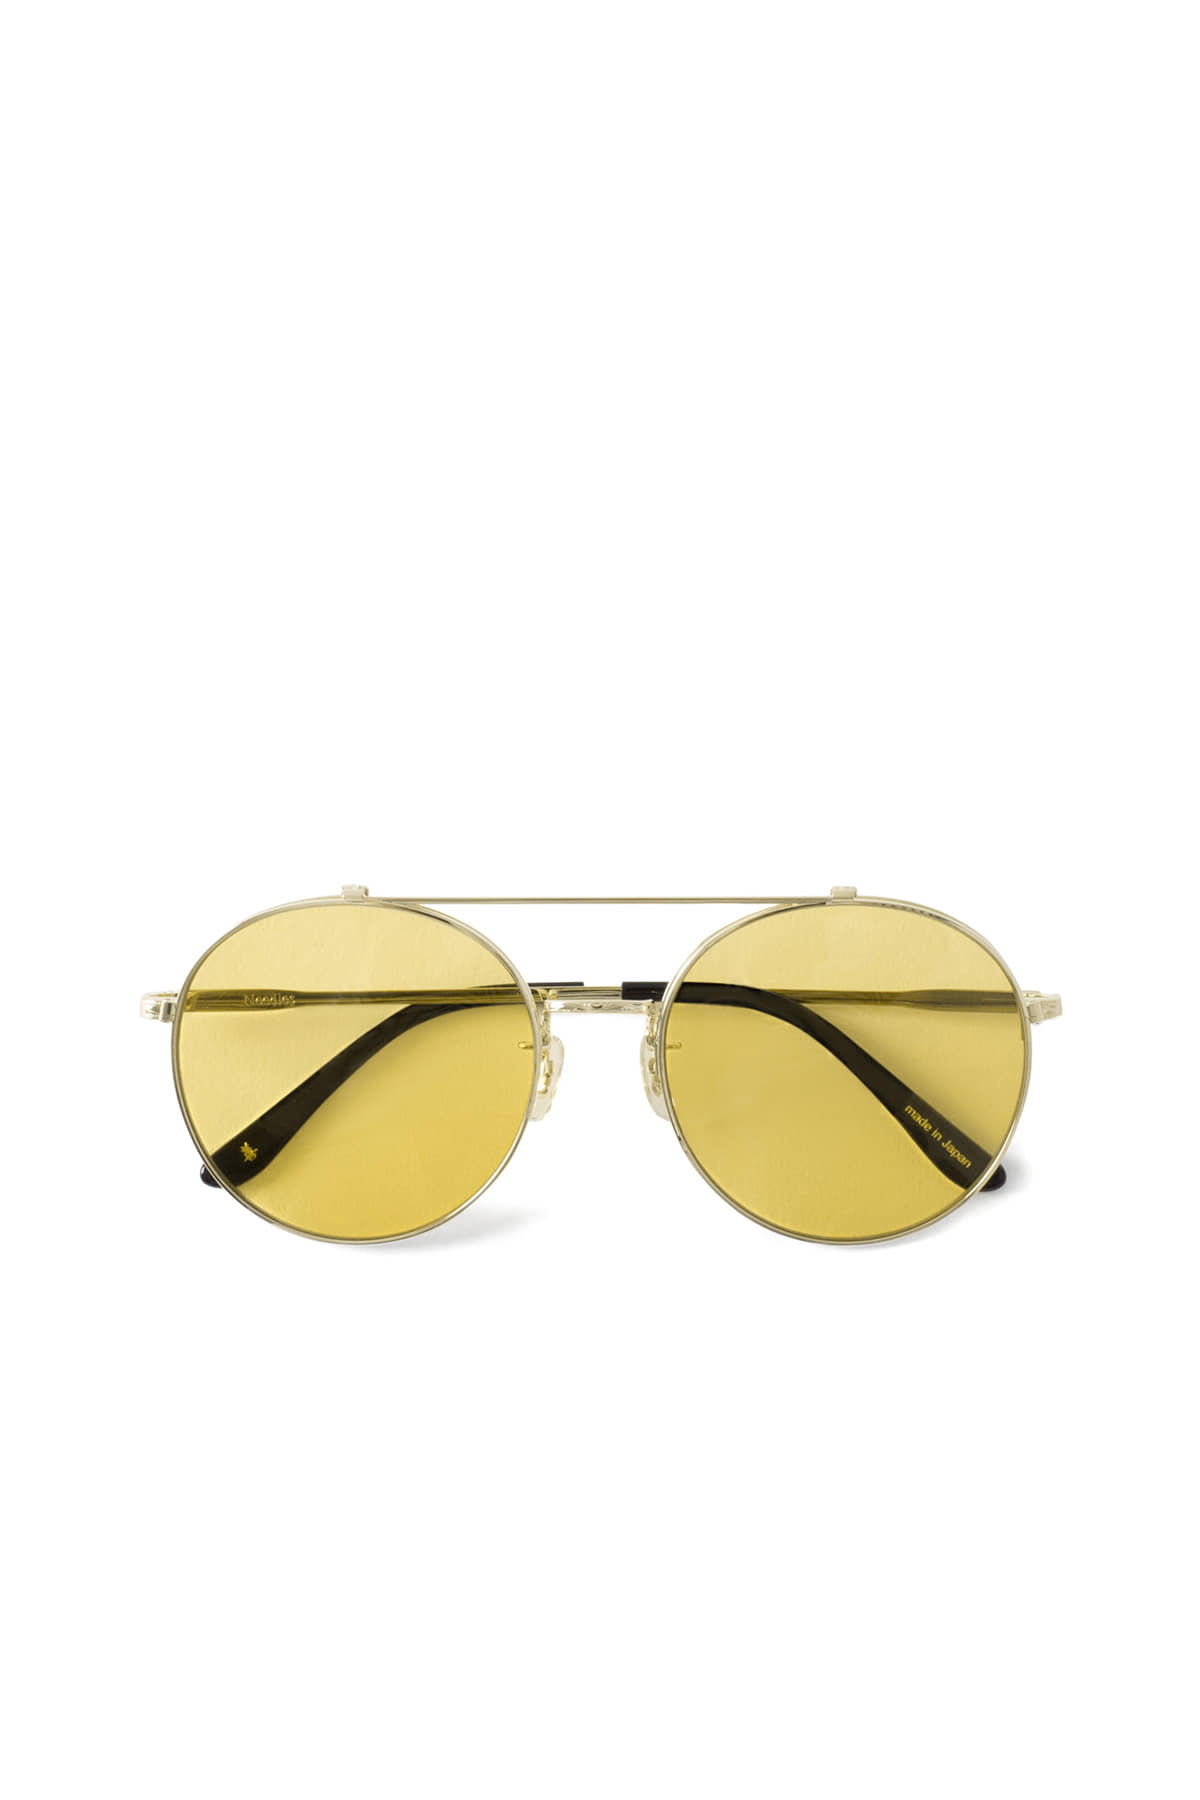 NEEDLES : Sean Sunglass (Gold / Yellow)